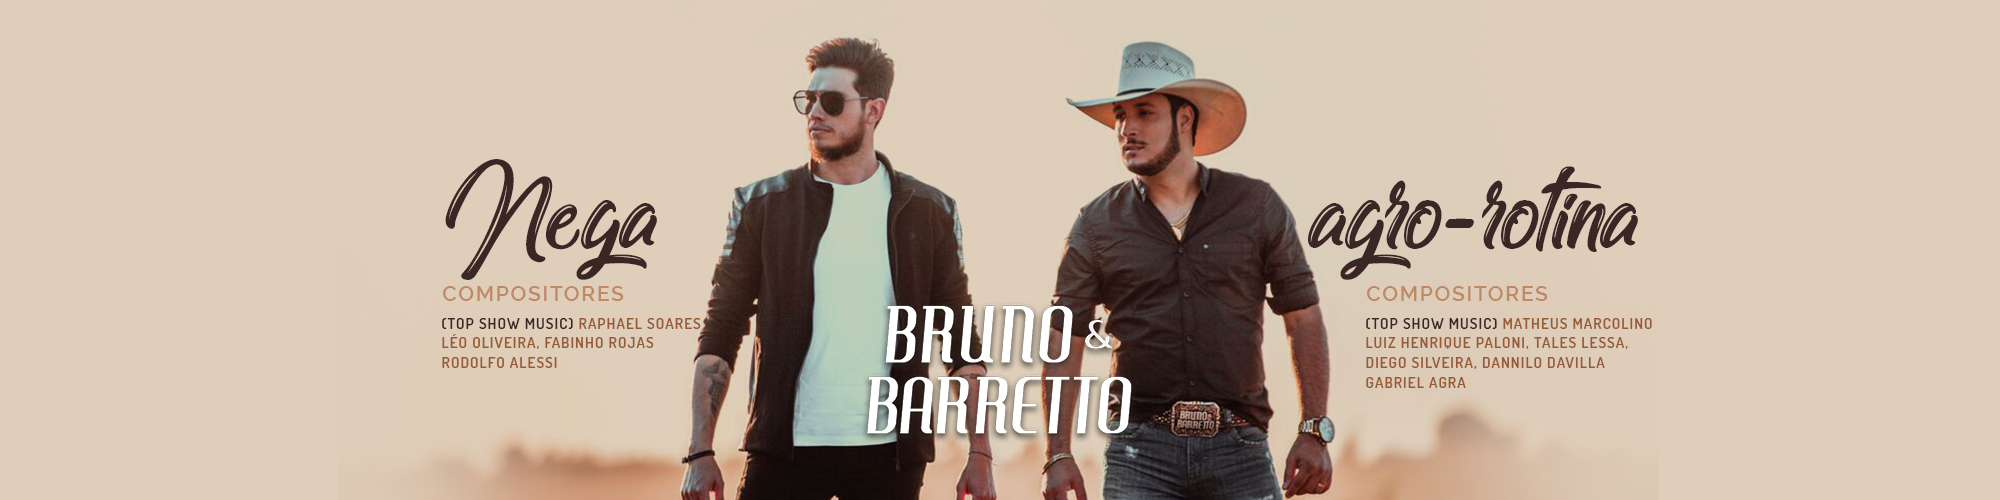 bruno & barreto